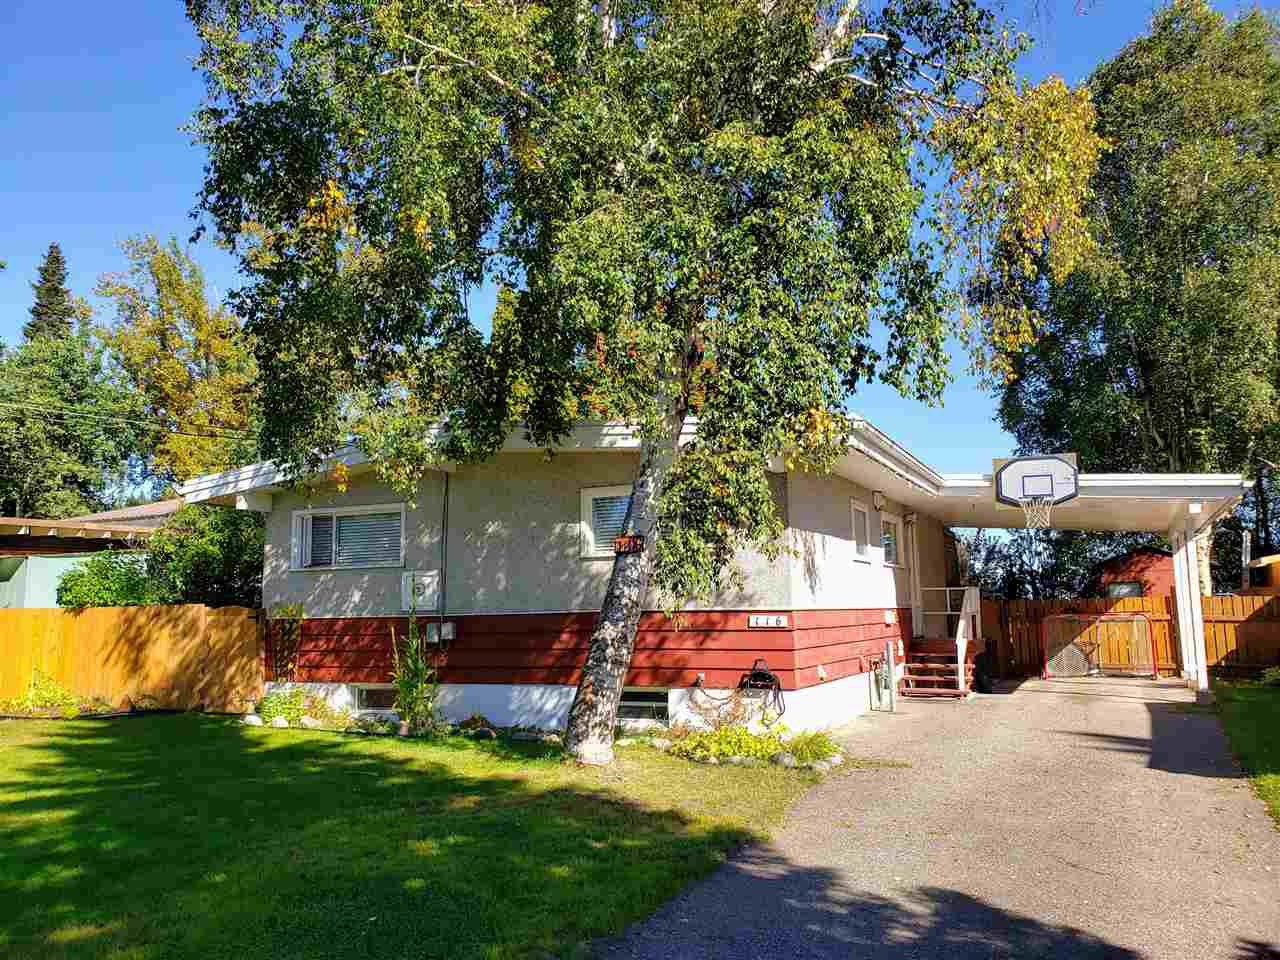 Main Photo: 116 DOUGLAS Street in Prince George: Nechako View House for sale (PG City Central (Zone 72))  : MLS®# R2497558